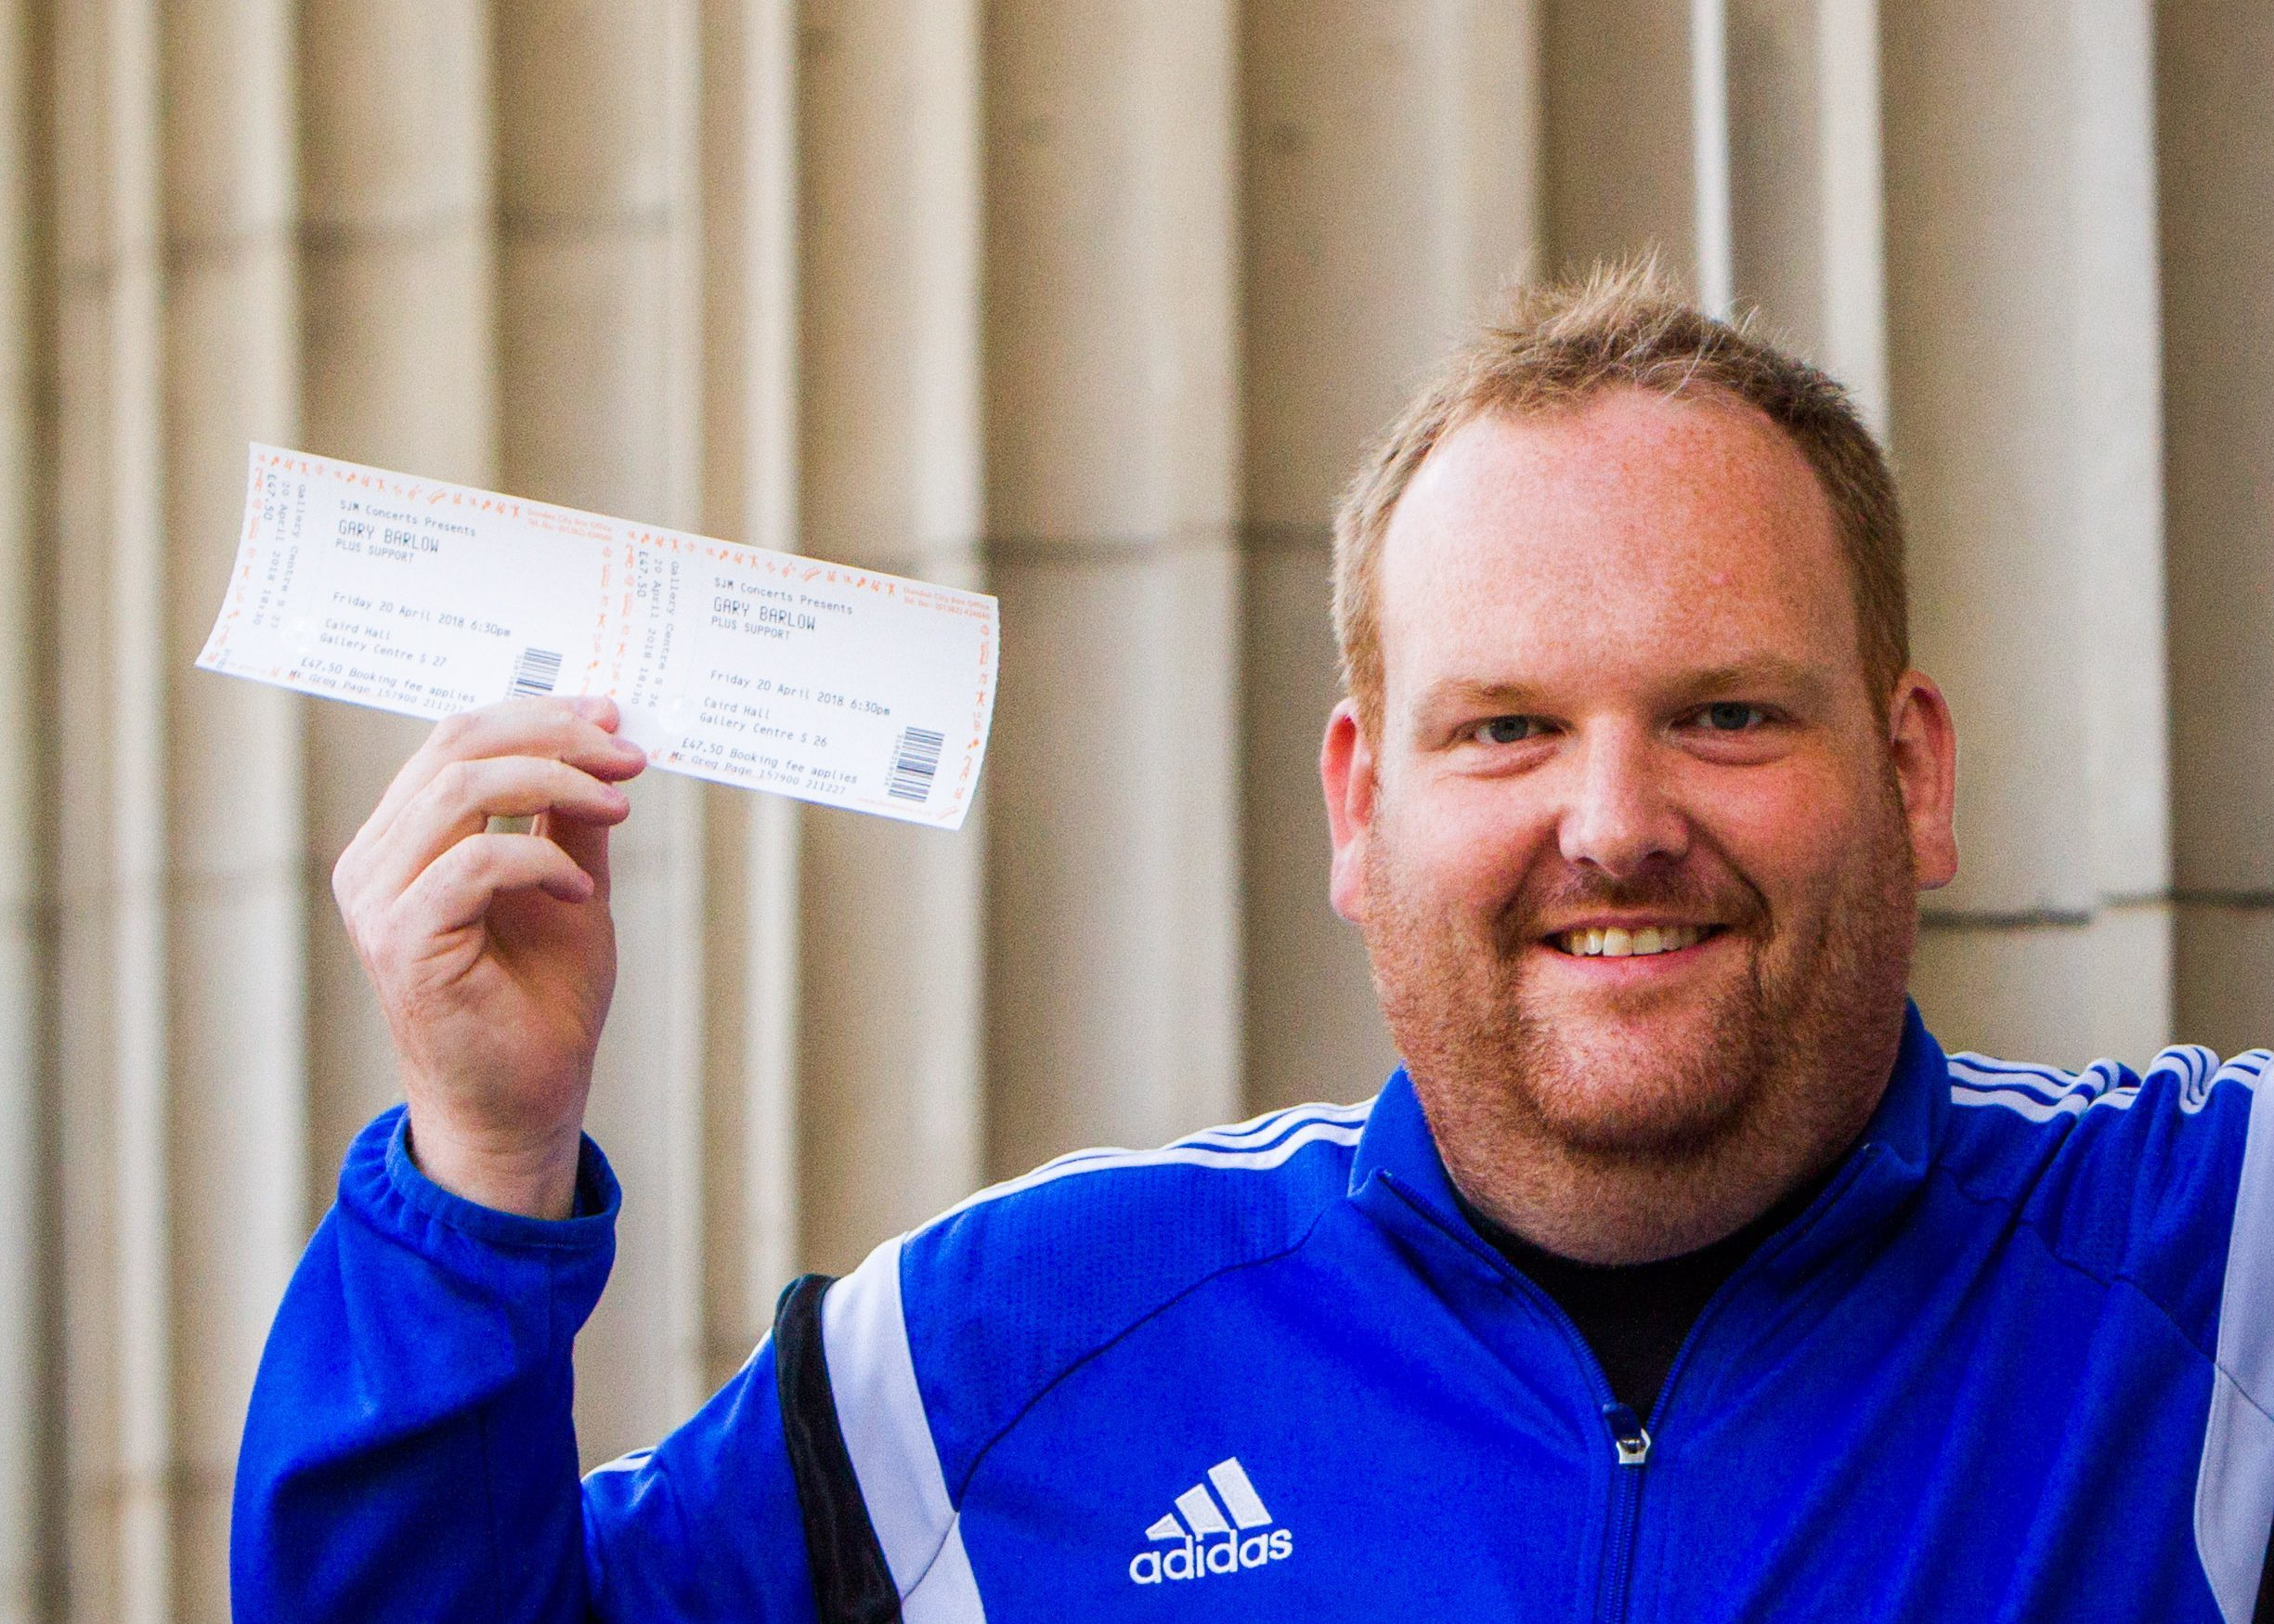 Greg Page from Dundee is surprising his wife Zee with tickets to Gary Barlow.